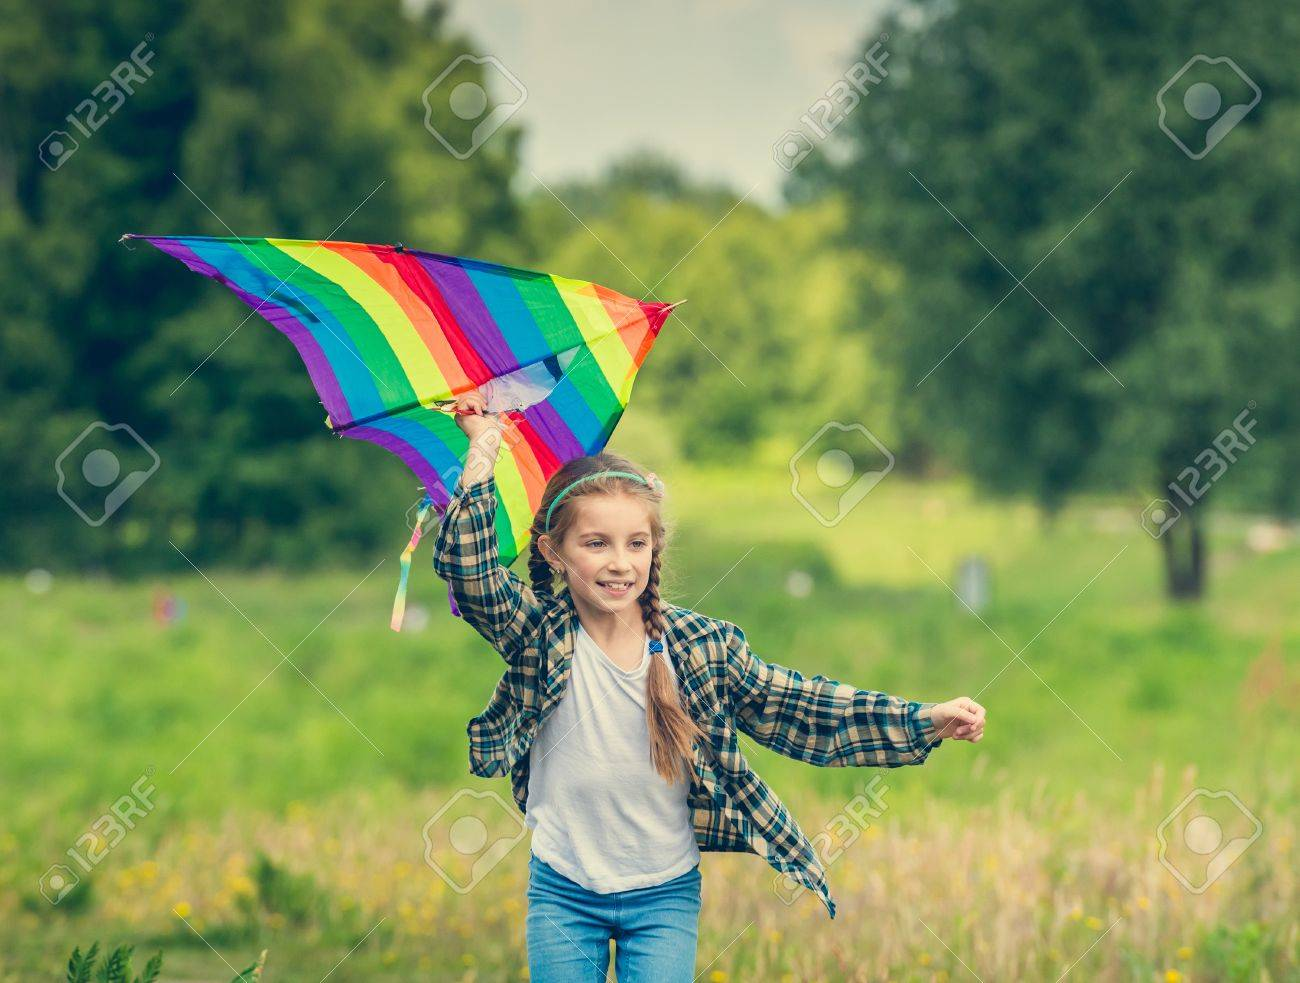 little cute girl flying a kite in a meadow on a sunny day - 44481331